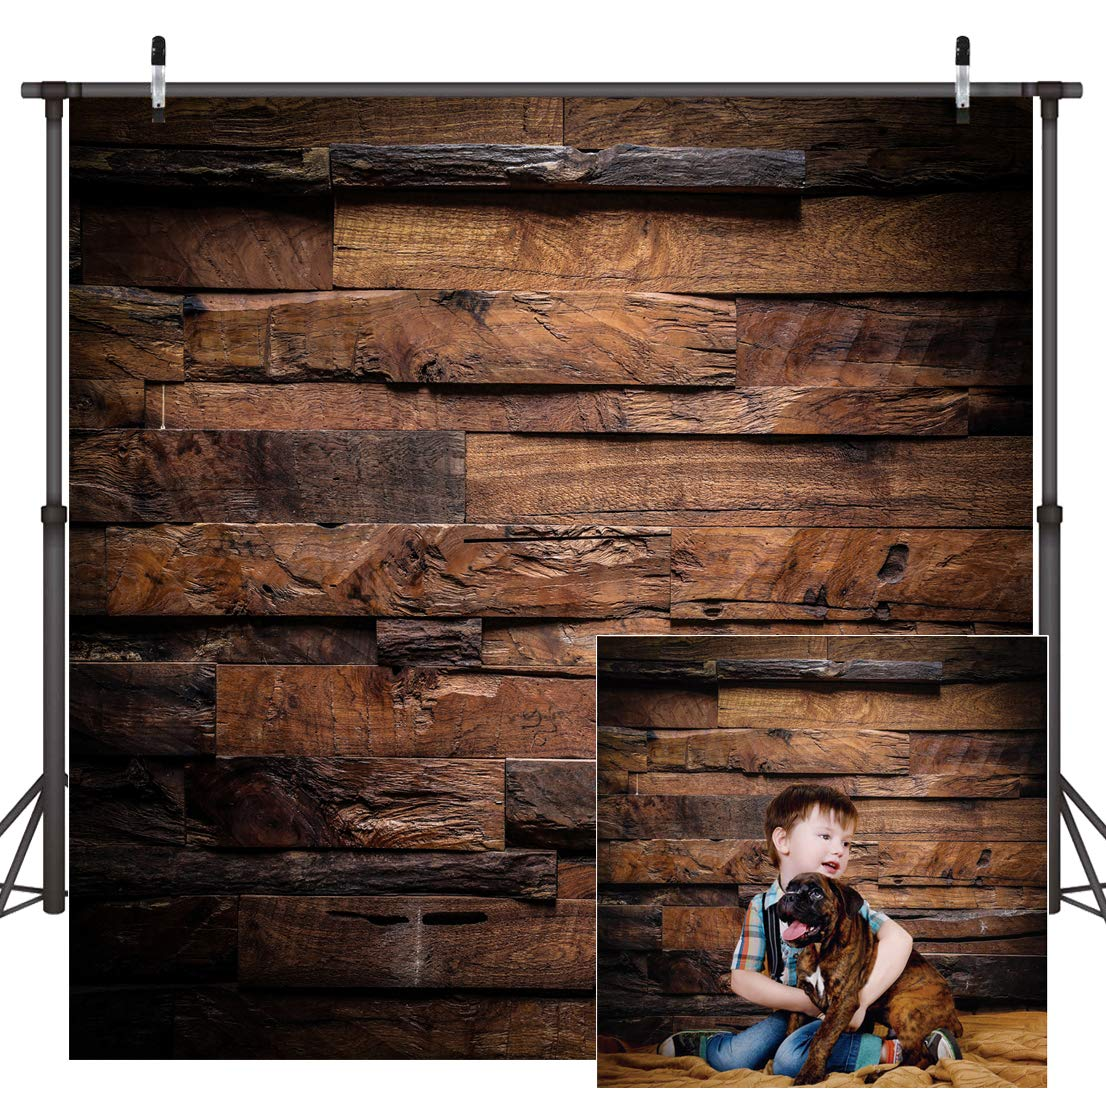 CYLYH 10x10ft Photography Backdrop Brown Wood 3D Backdrops for Picture Customized Vinyl Photo Background D104 by CYLYH (Image #2)